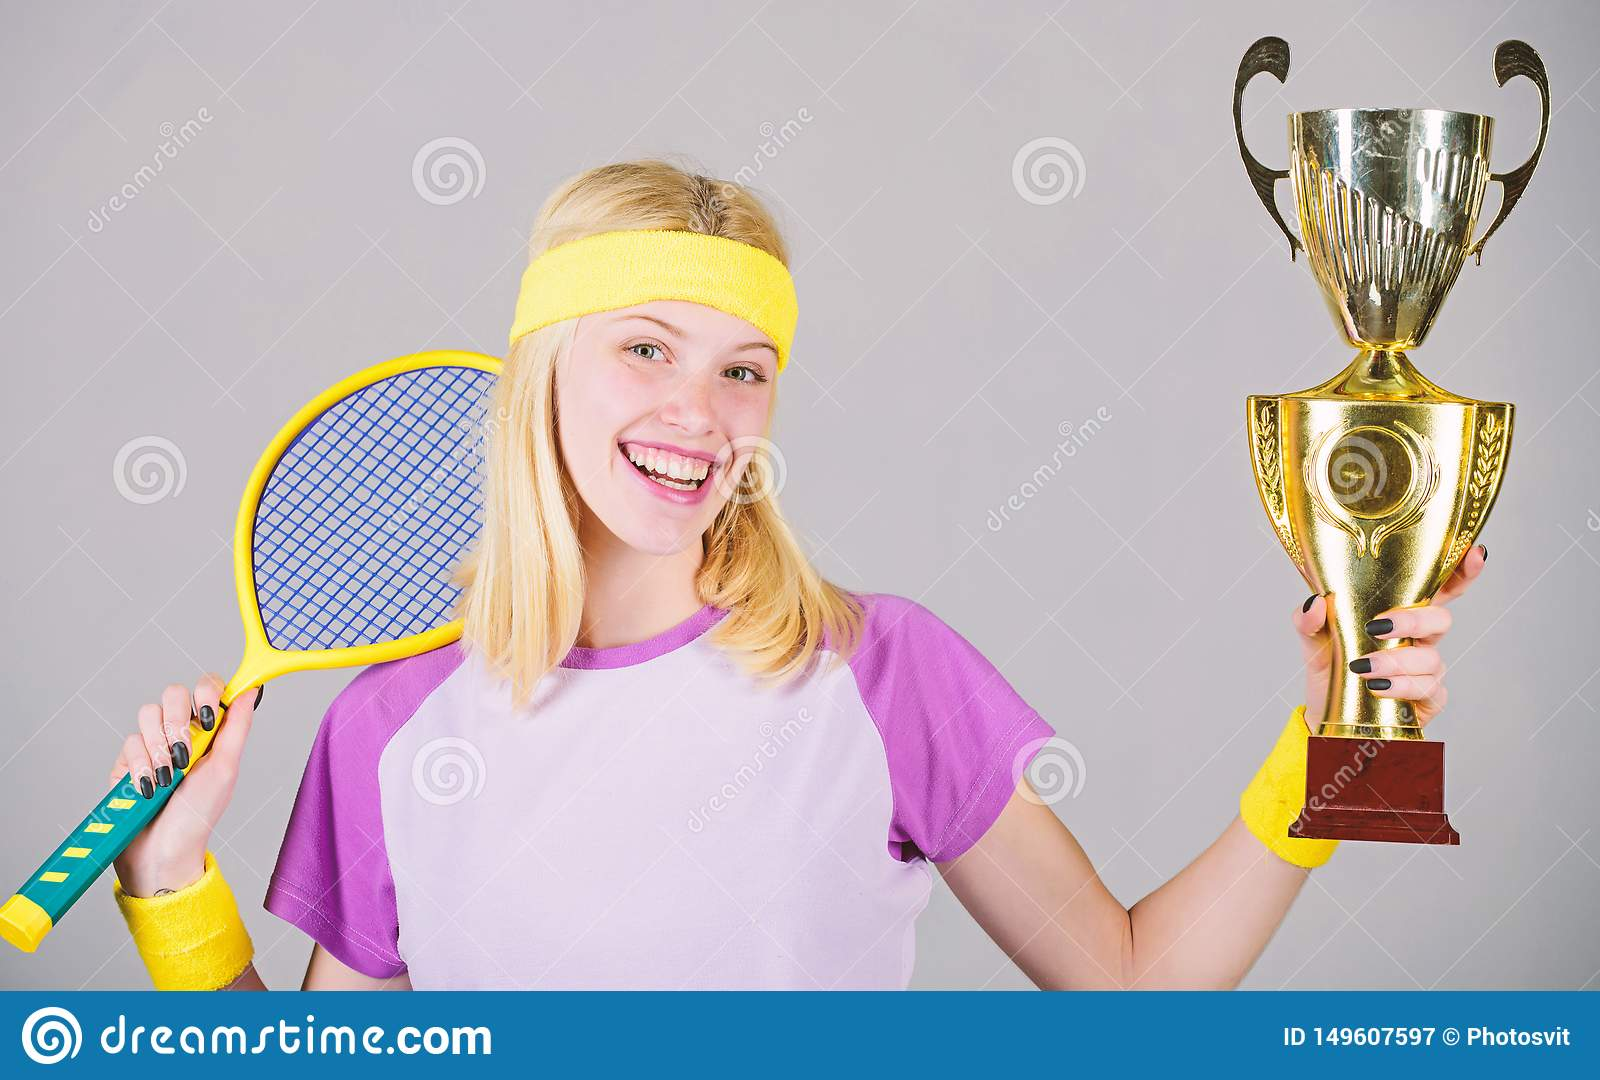 Woman wear sport outfit. First place. Sport achievement. Celebrate victory. Tennis champion. Athletic girl hold tennis